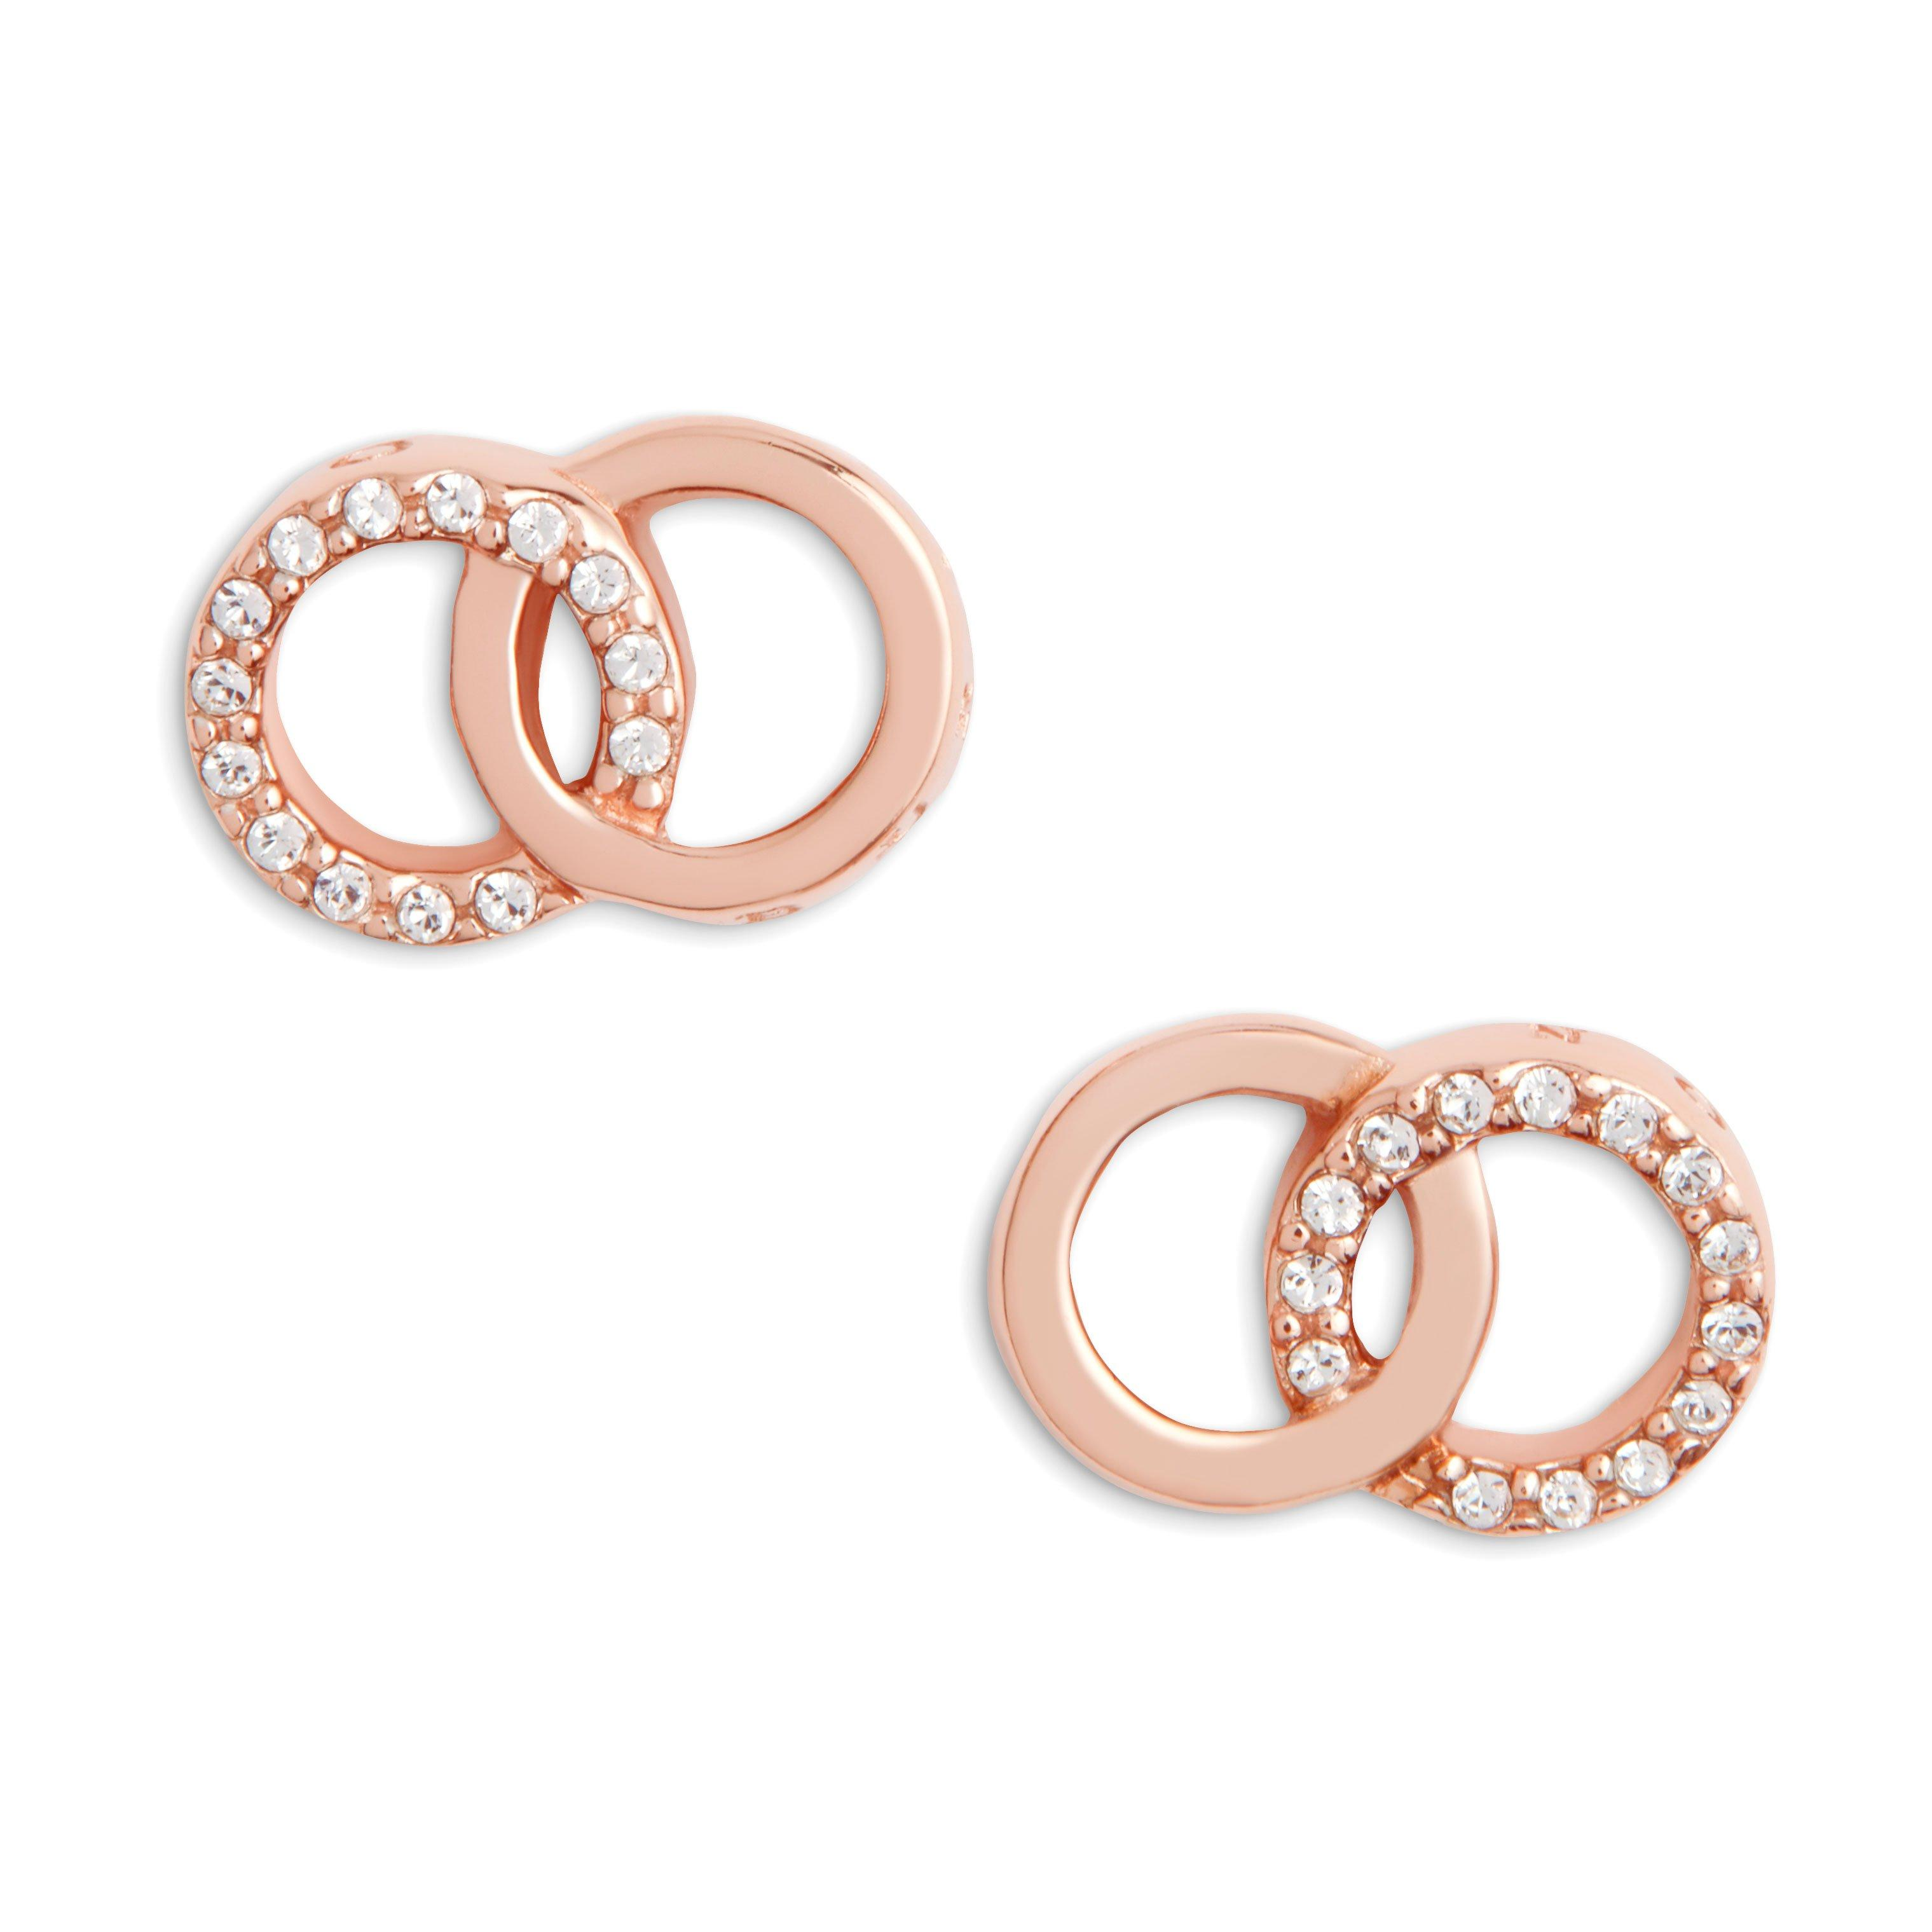 Olivia Burton The Classics Interlink Rose Gold Plated Cubic Zirconia Earrings